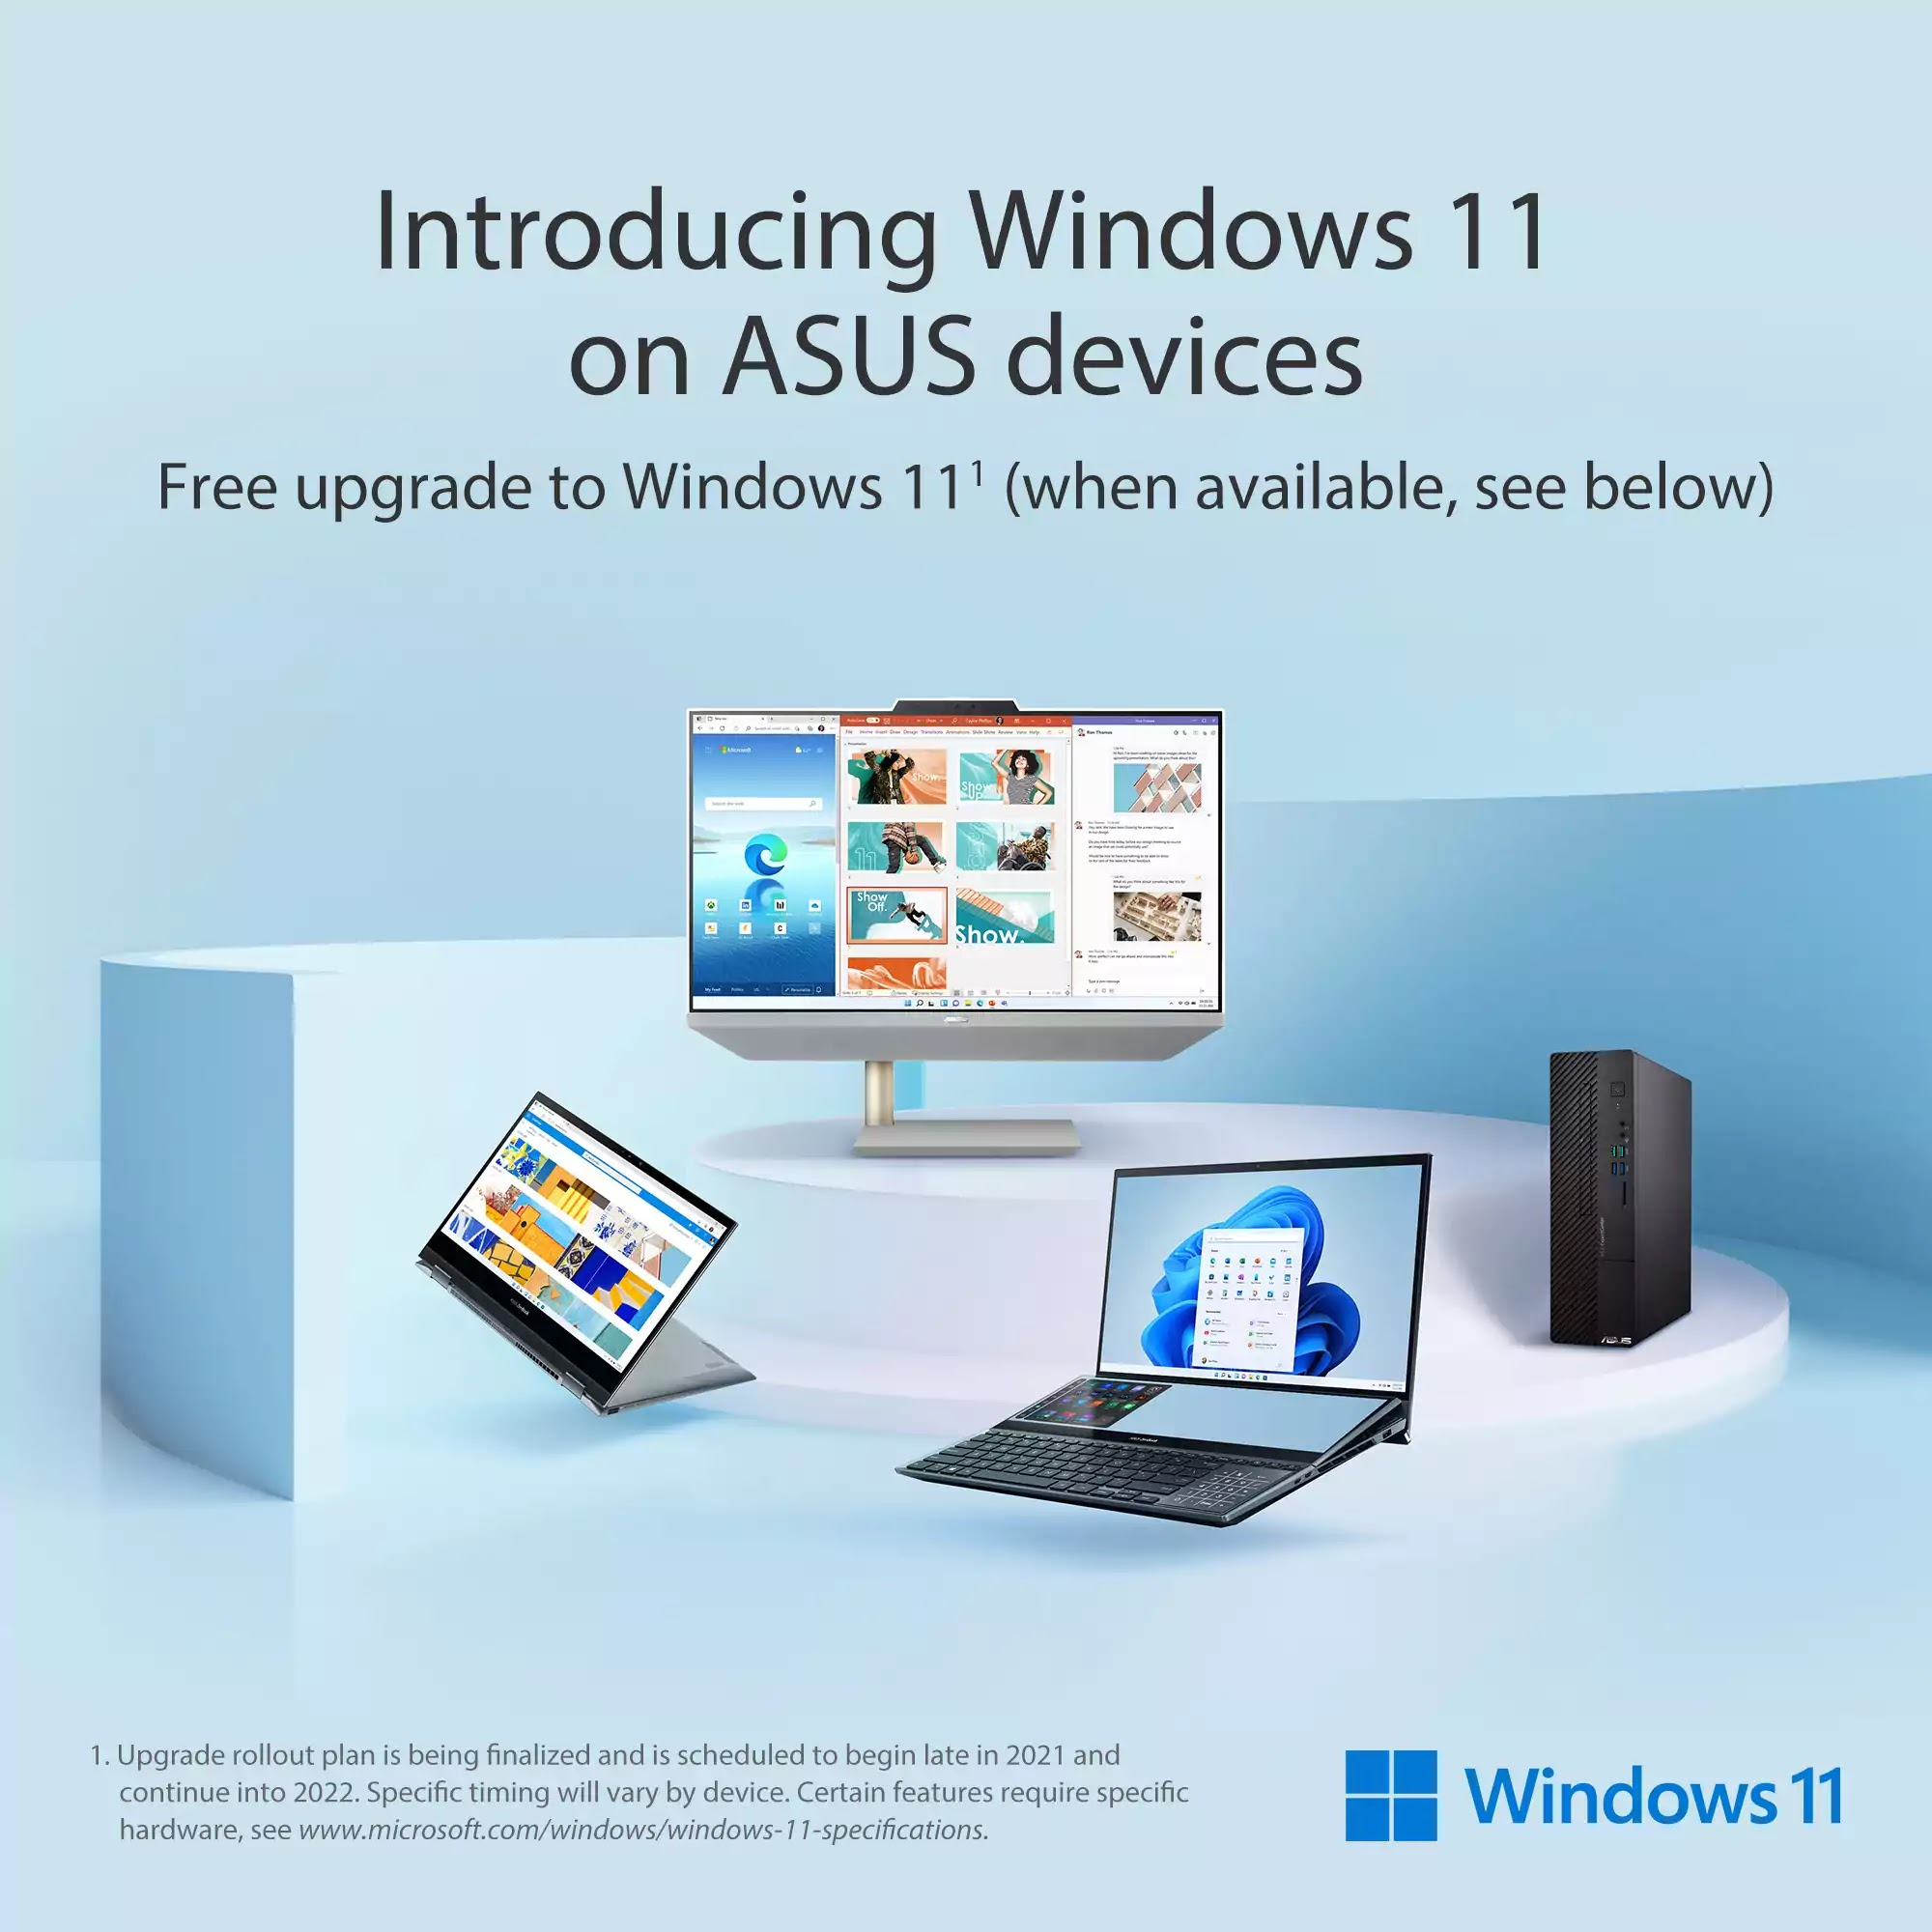 ASUS Partners with Microsoft for Windows 11 Upgrade